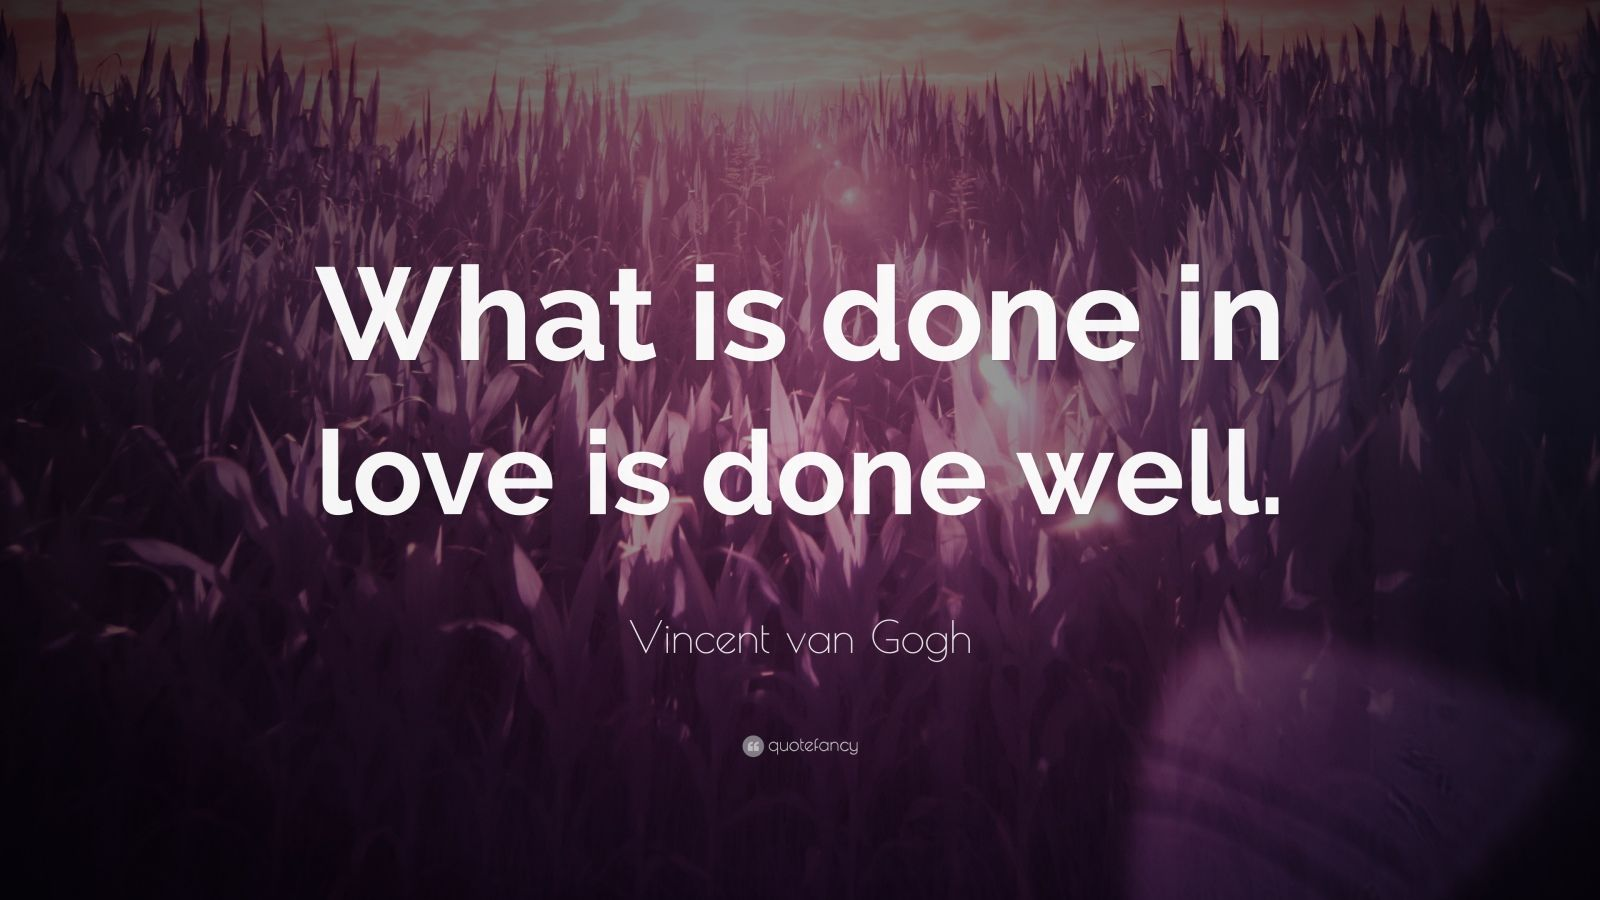 Motivational Quotes To Study Wallpaper Vincent Van Gogh Quote What Is Done In Love Is Done Well